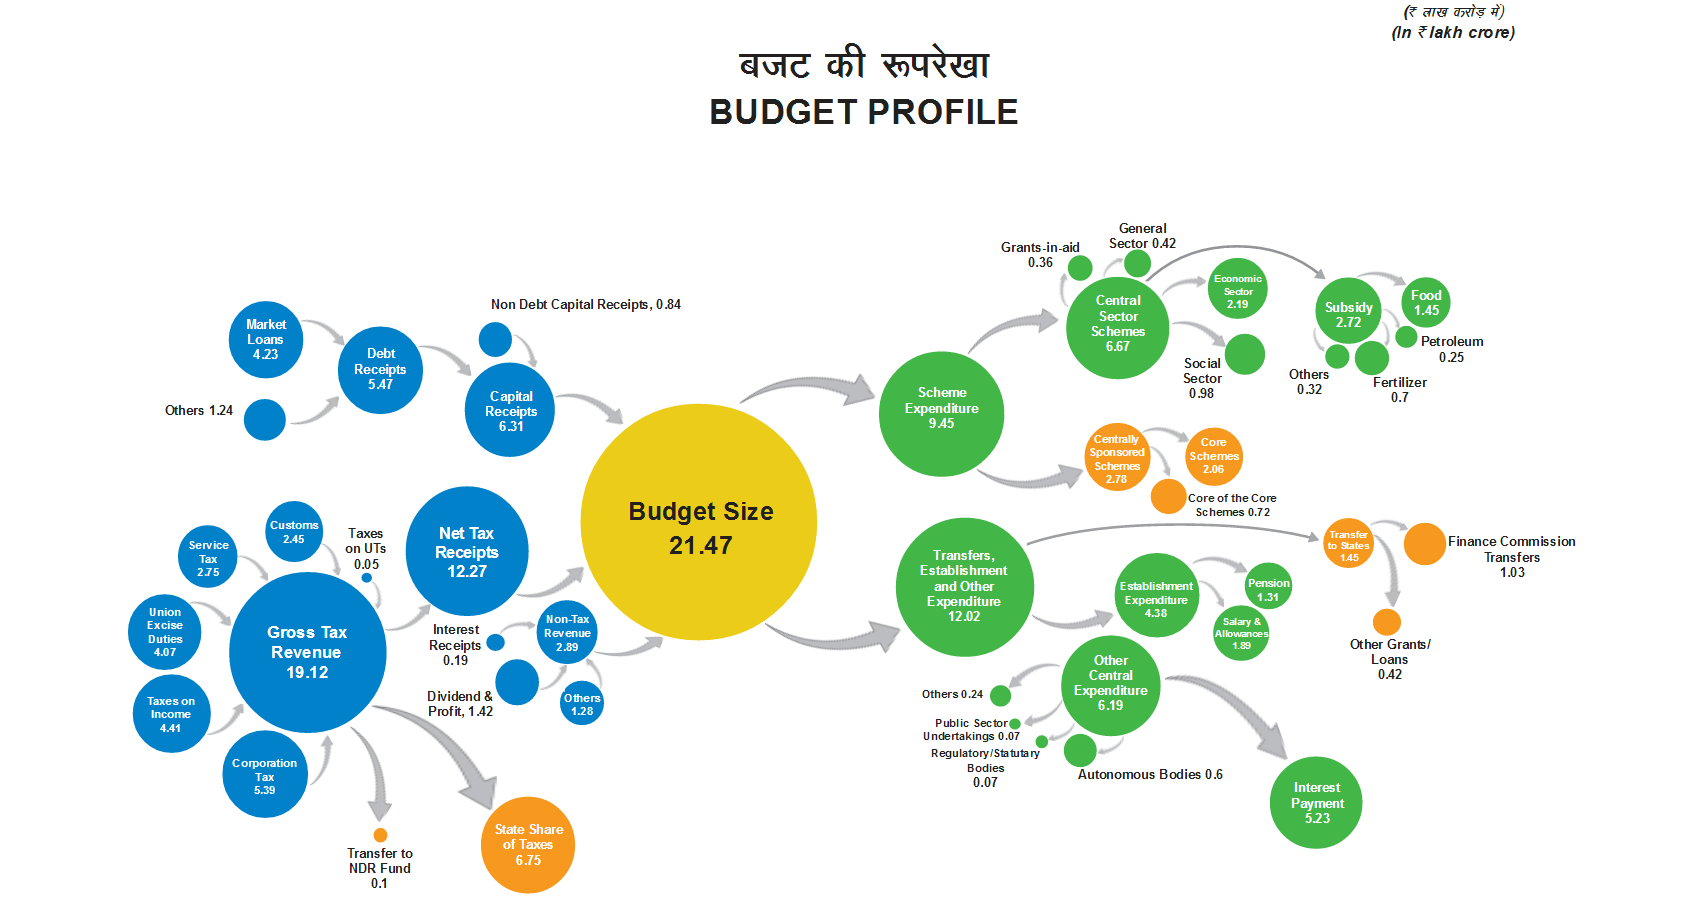 Source: Indiabudget.nic.in